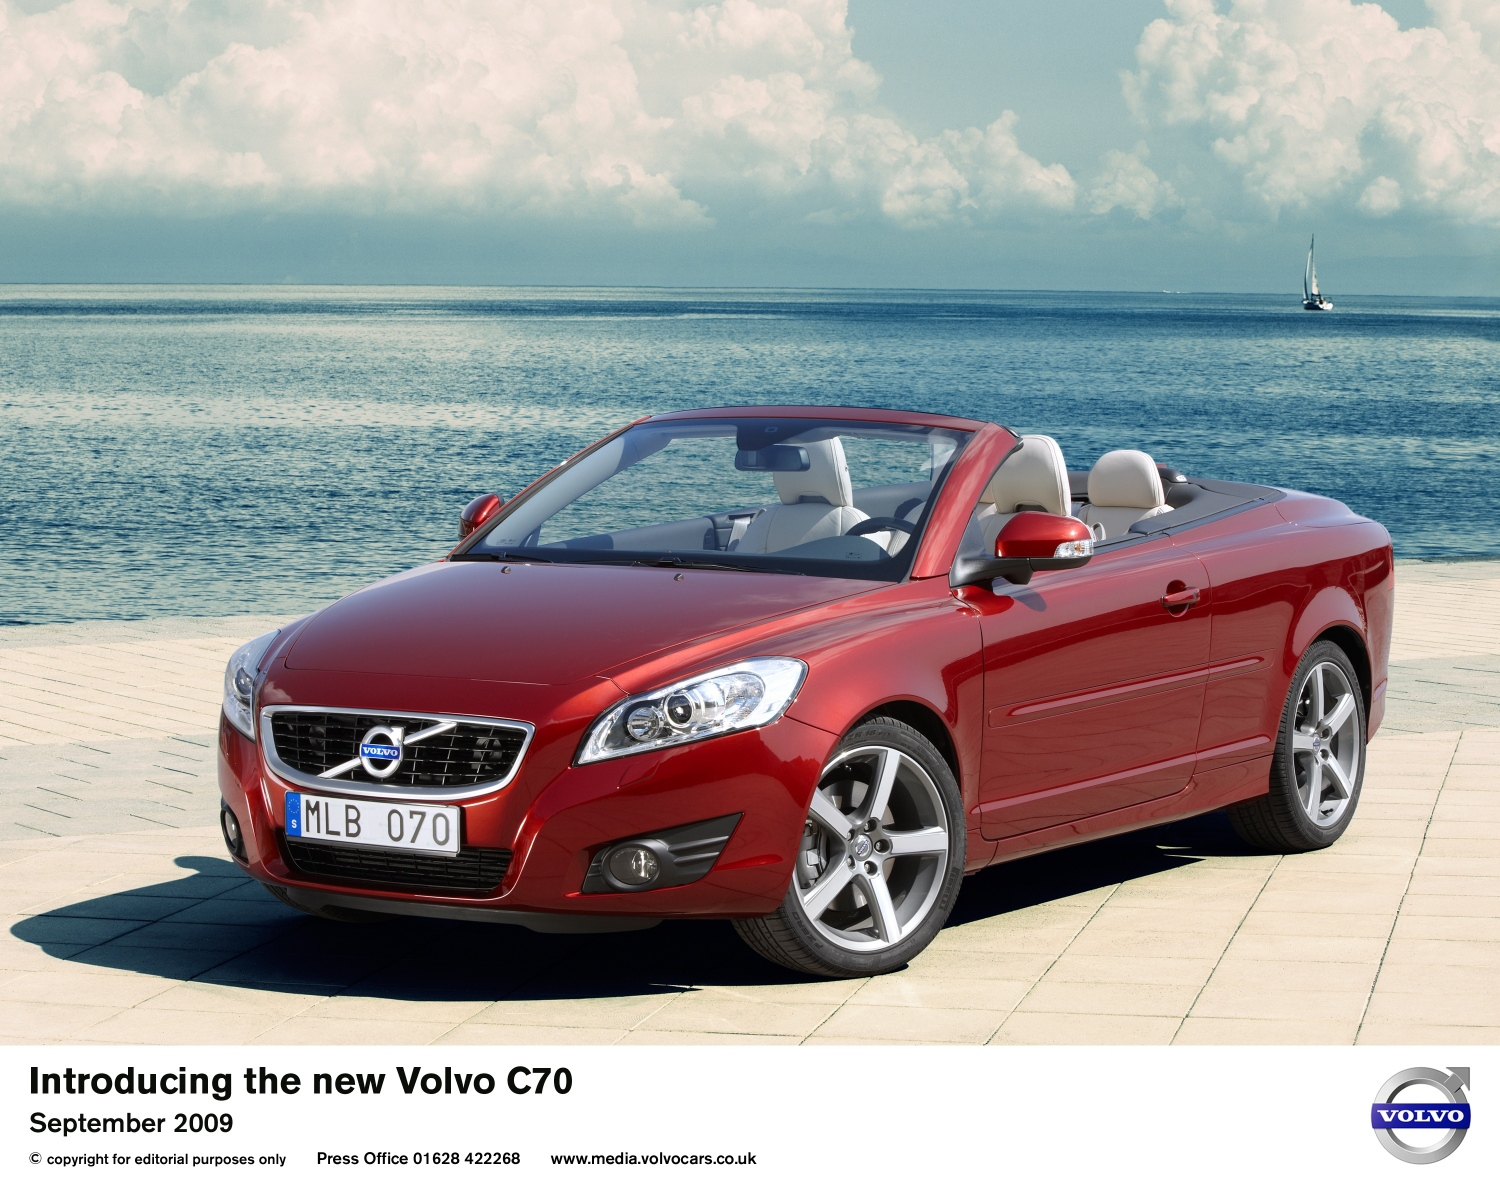 volvo c70 coup cabrio technical details history photos. Black Bedroom Furniture Sets. Home Design Ideas